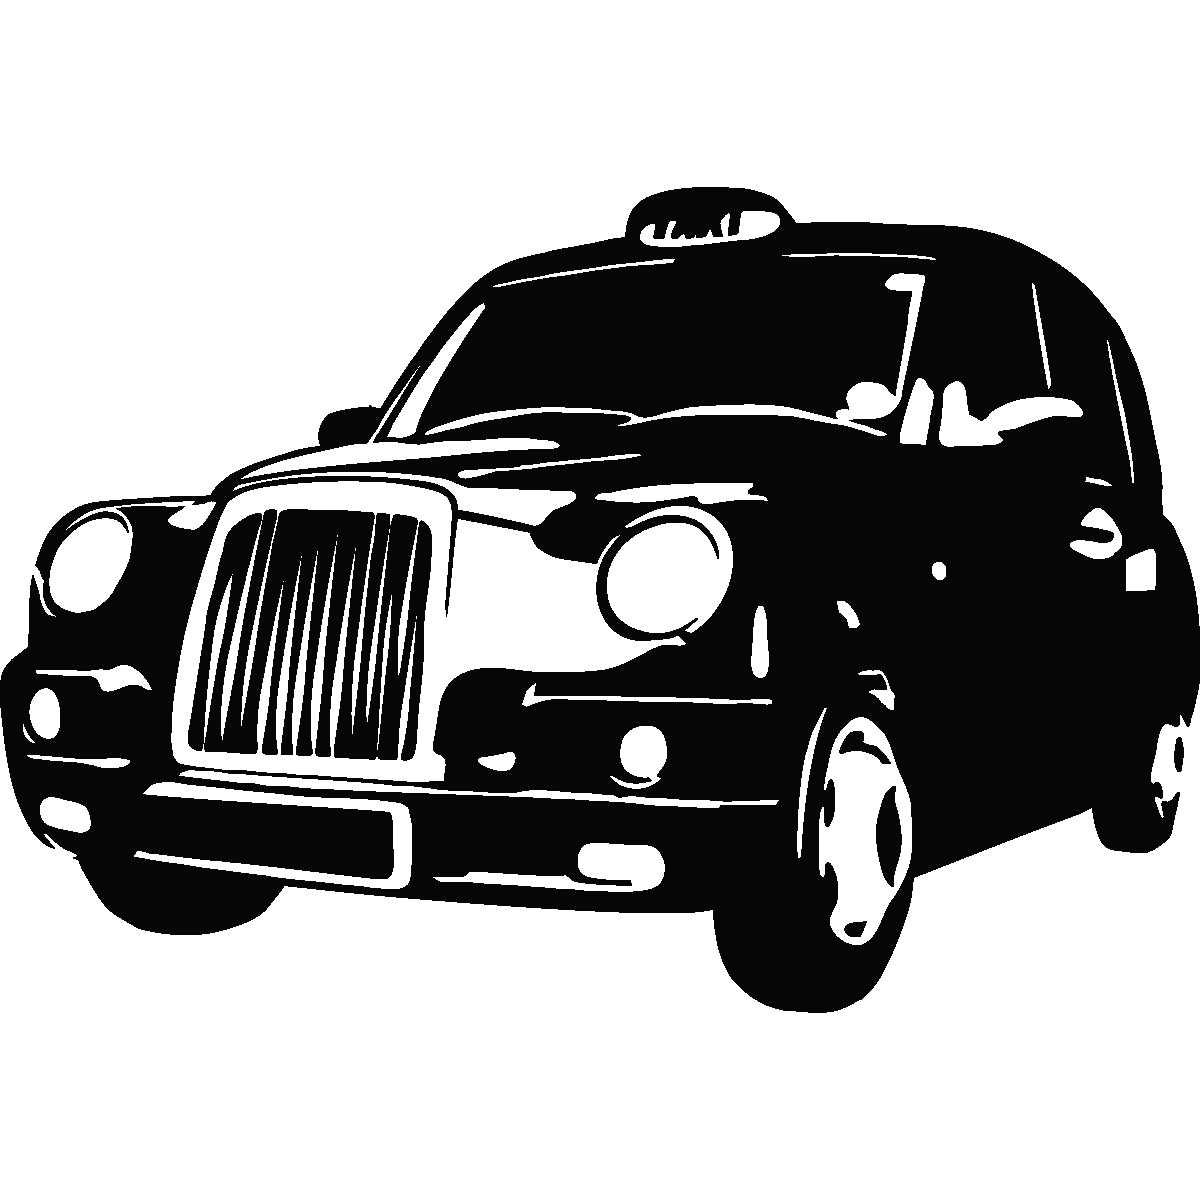 Clipart london taxi image black and white download Free Taxi Cliparts, Download Free Clip Art, Free Clip Art on Clipart ... image black and white download